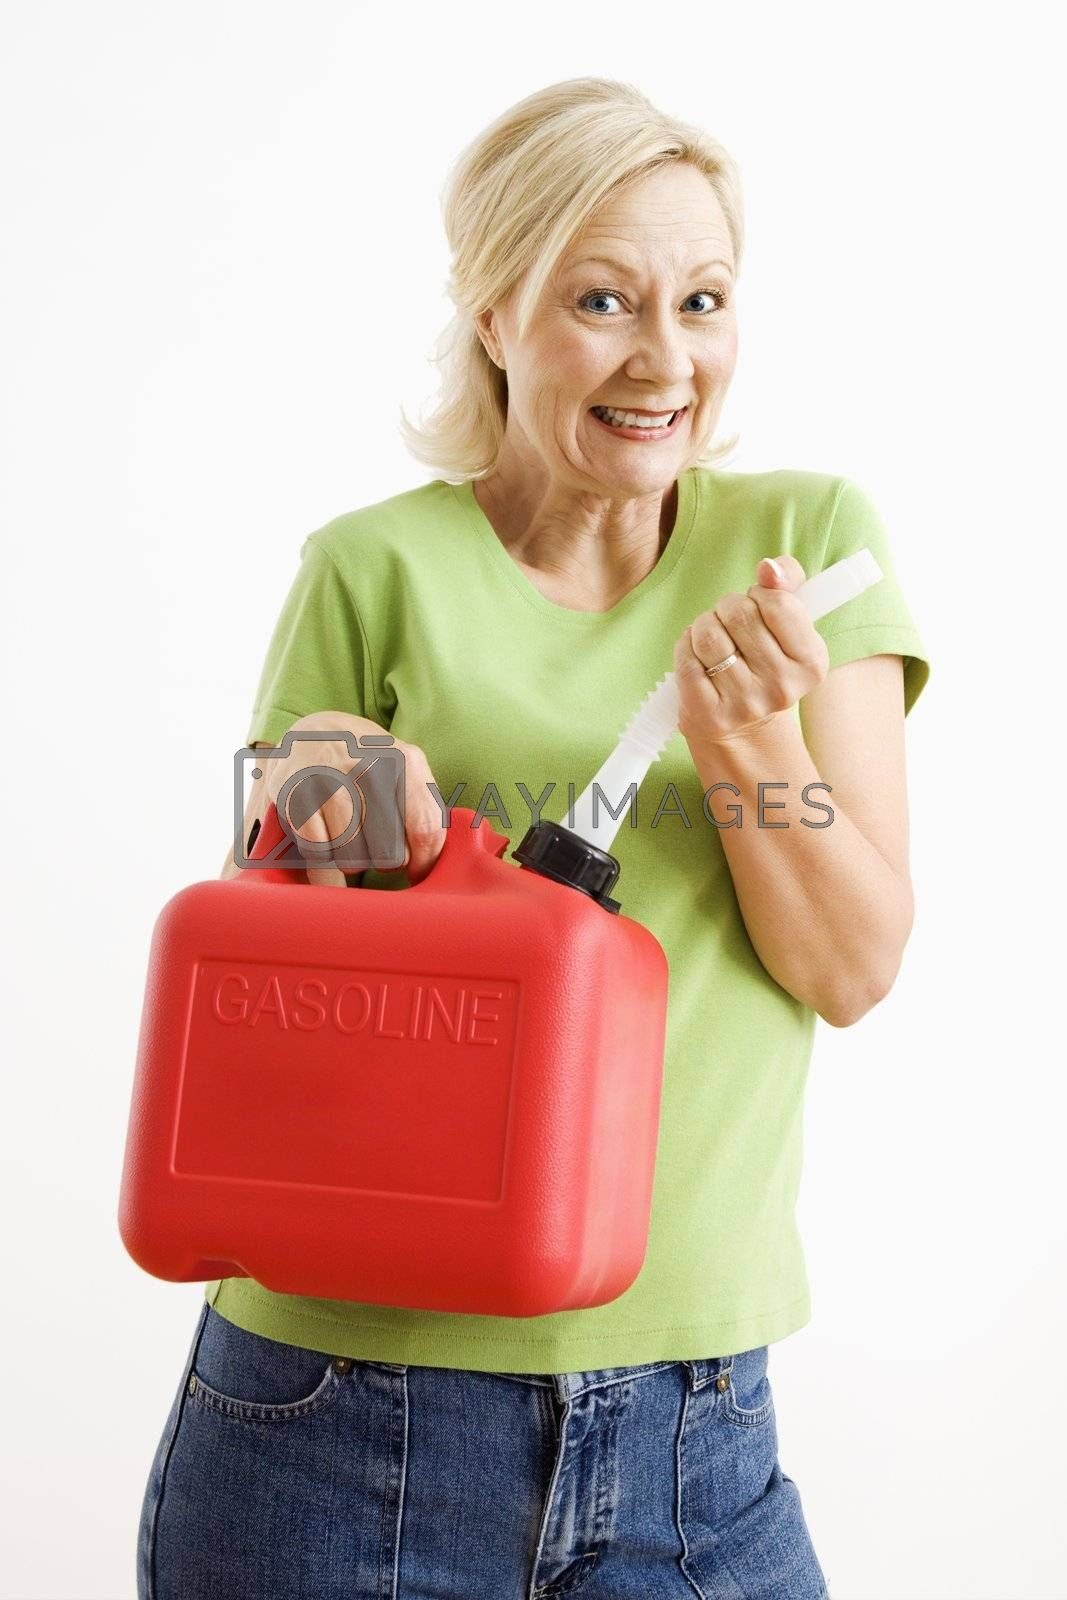 Portrait of smiling adult blonde woman holding gas can.